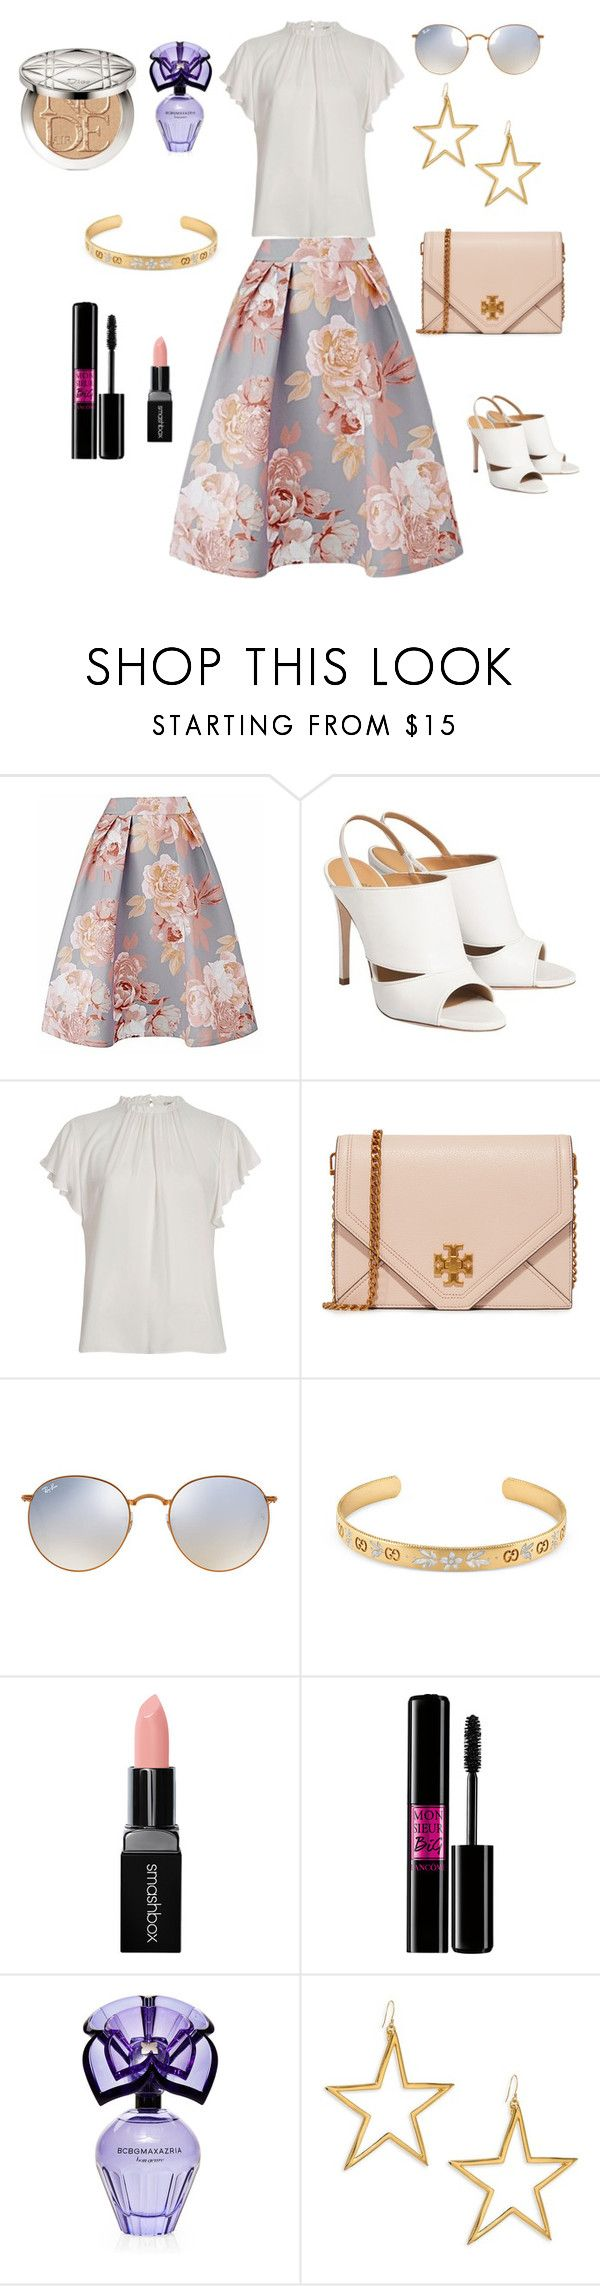 """""""Floral Printed Skirt"""" by april-1884 ❤ liked on Polyvore featuring River Island, Tory Burch, Ray-Ban, Gucci, Smashbox, Lancôme, BCBGMAXAZRIA, Kenneth Jay Lane and Christian Dior"""